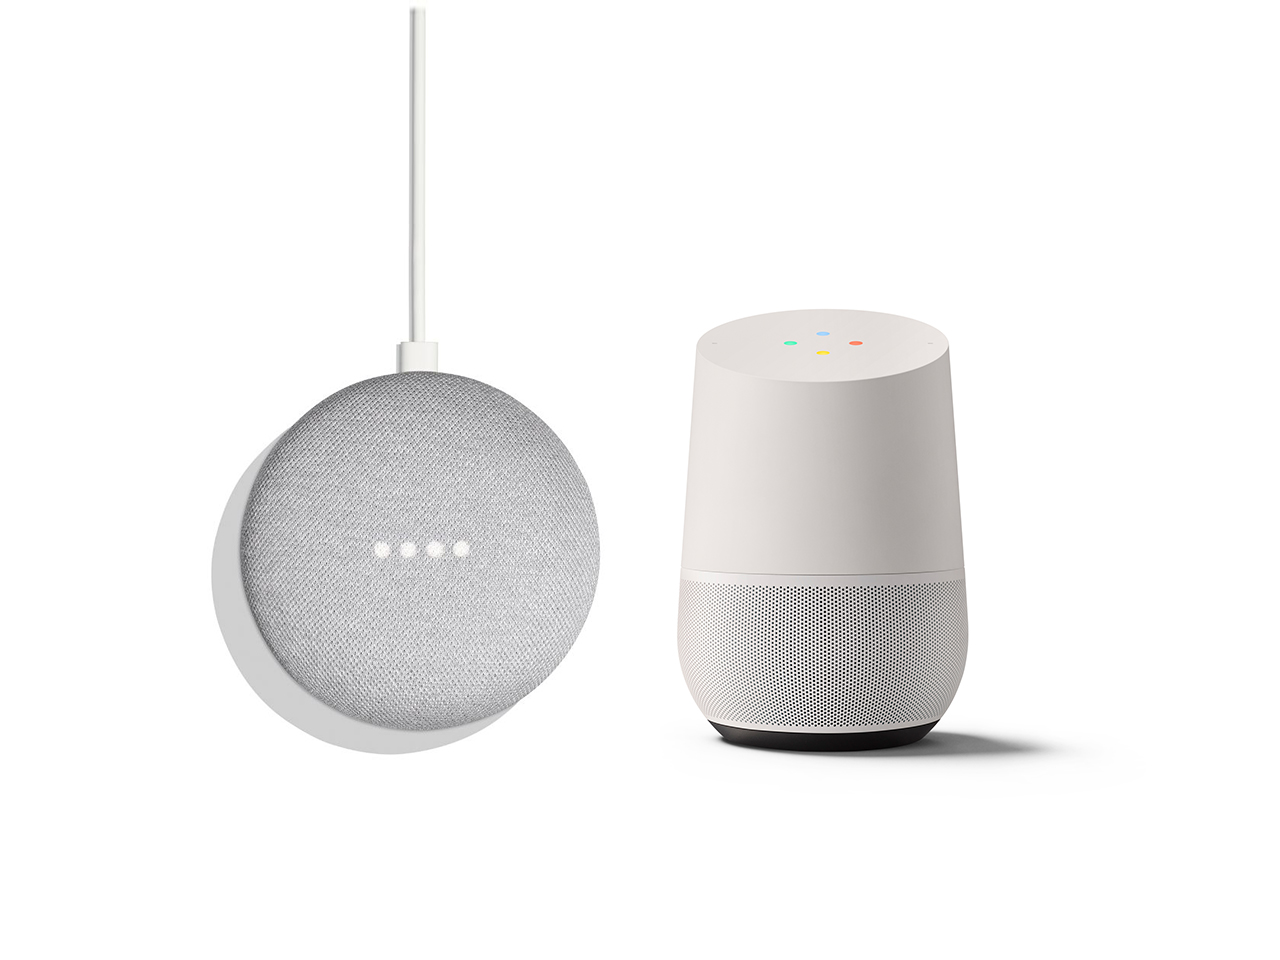 Google Home Mini and Google Home devices